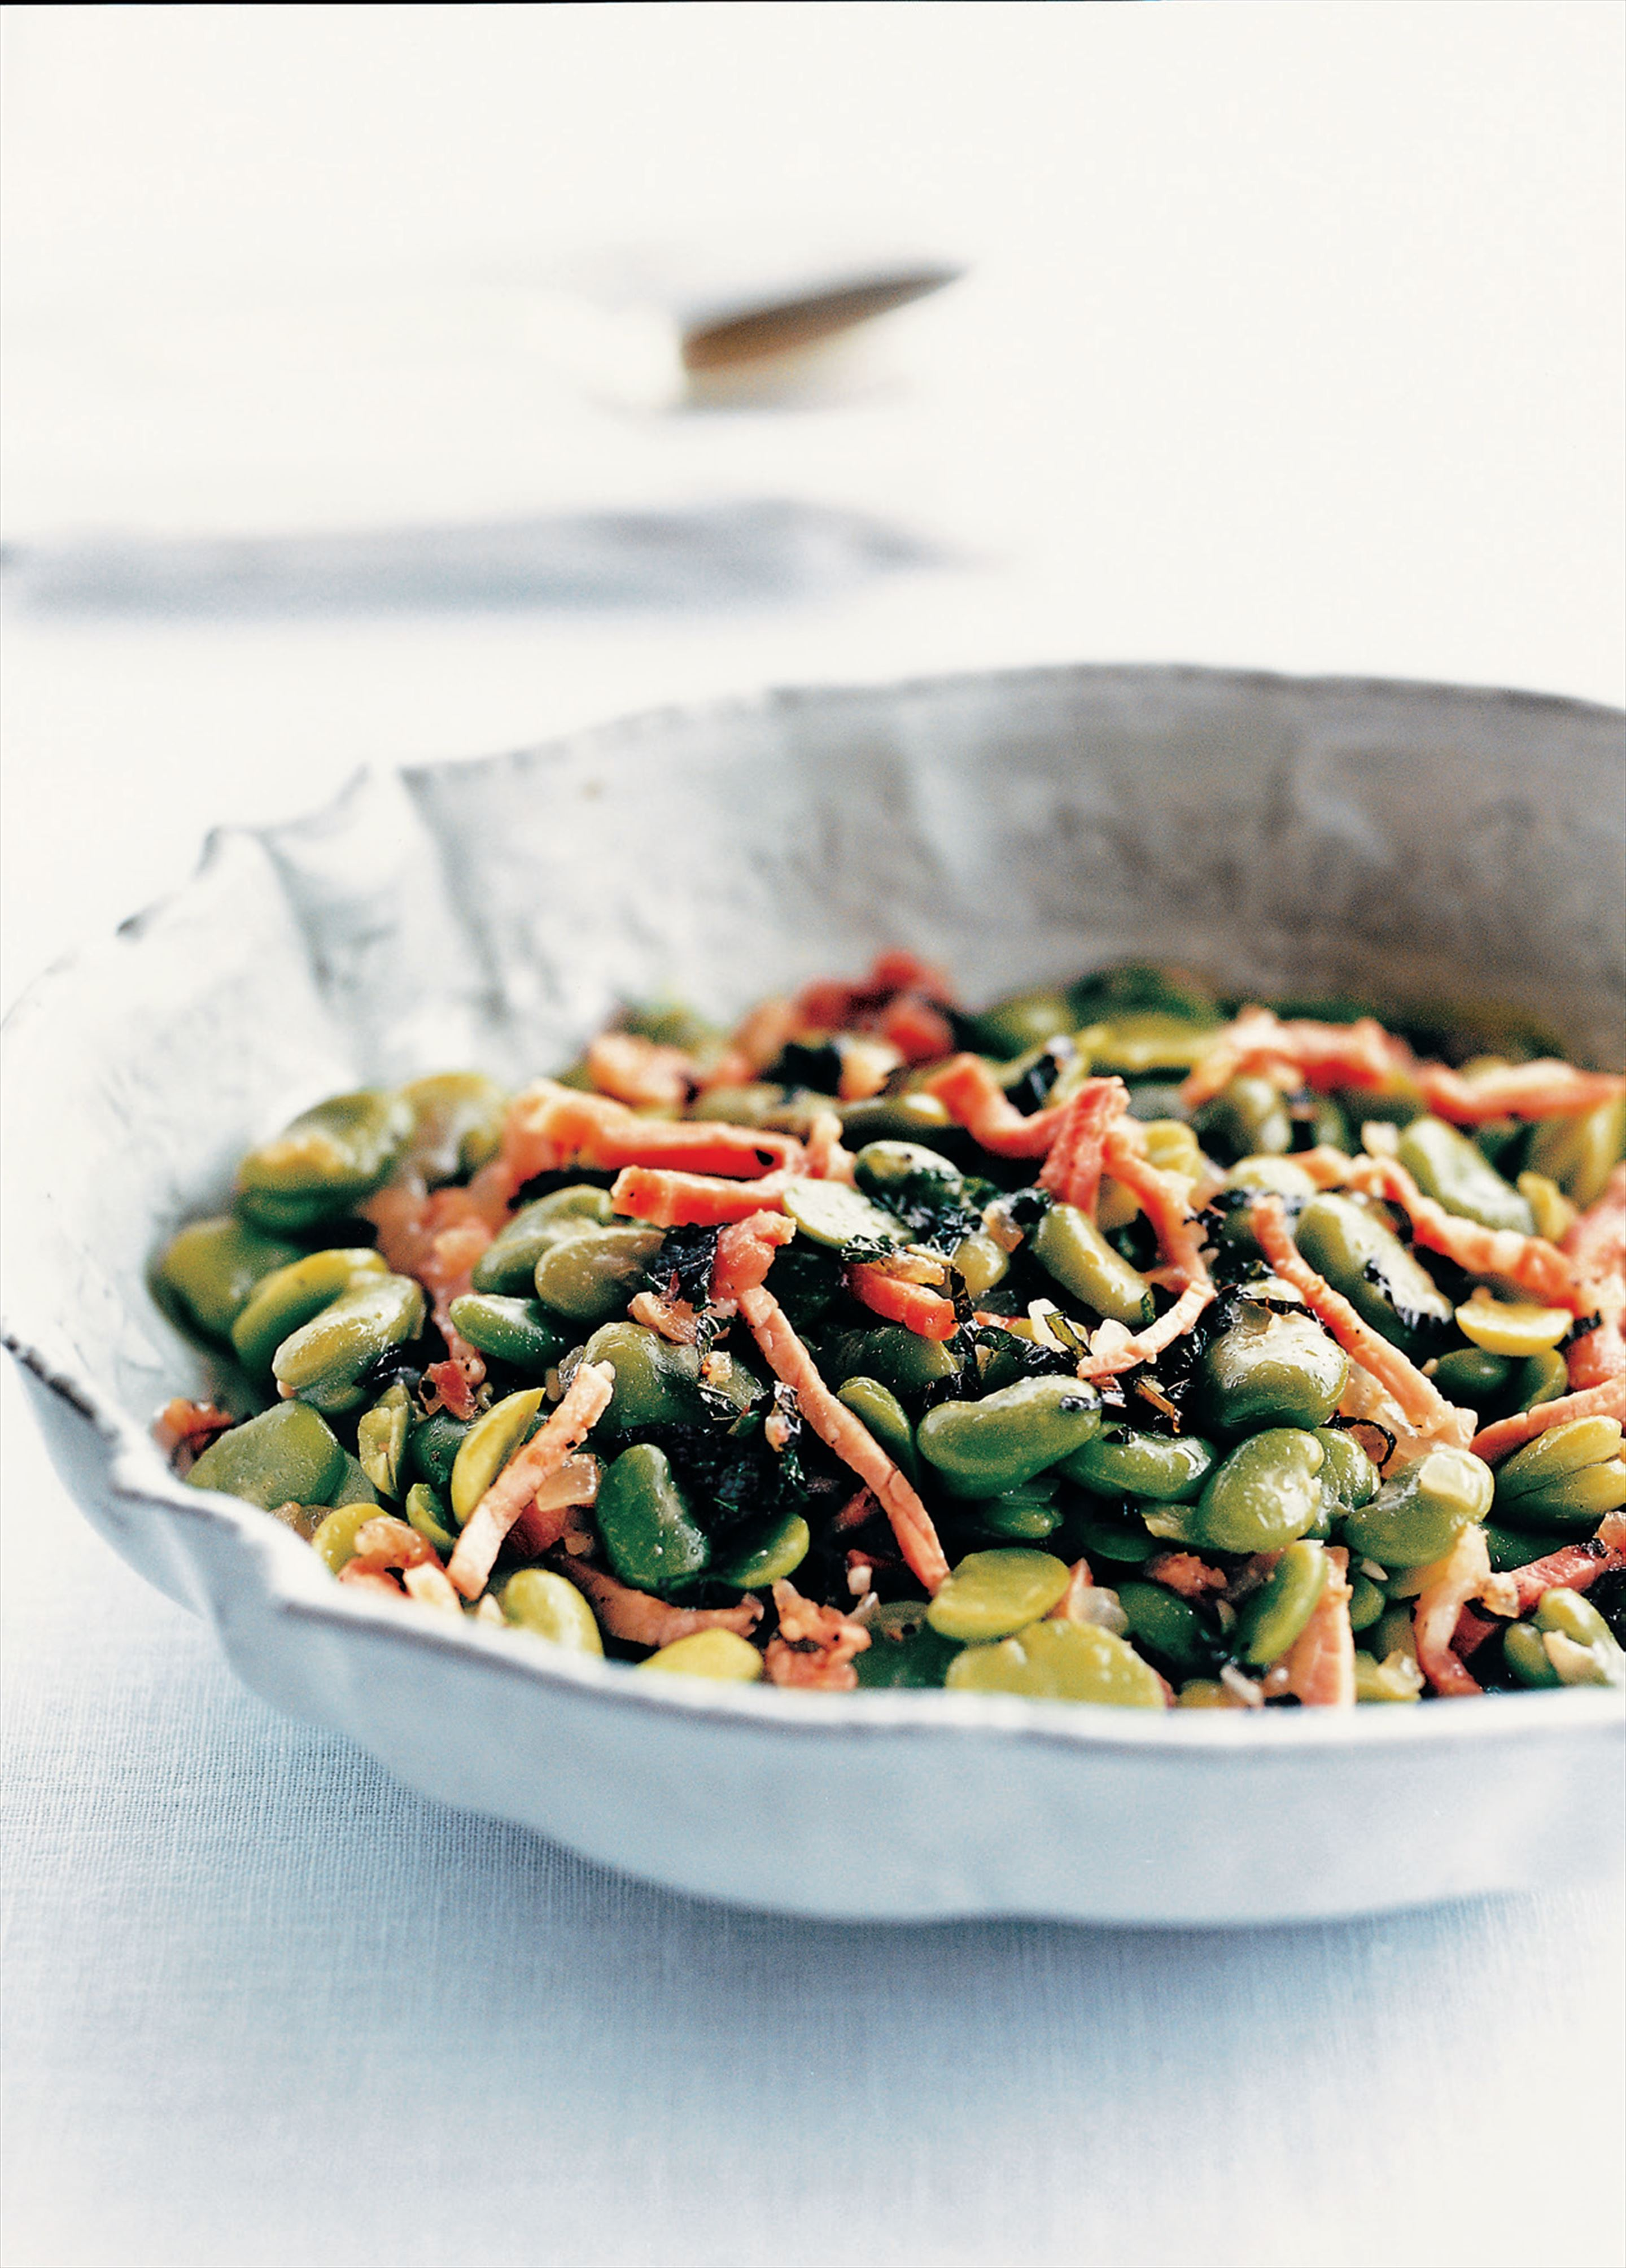 Broad beans with mint and pancetta